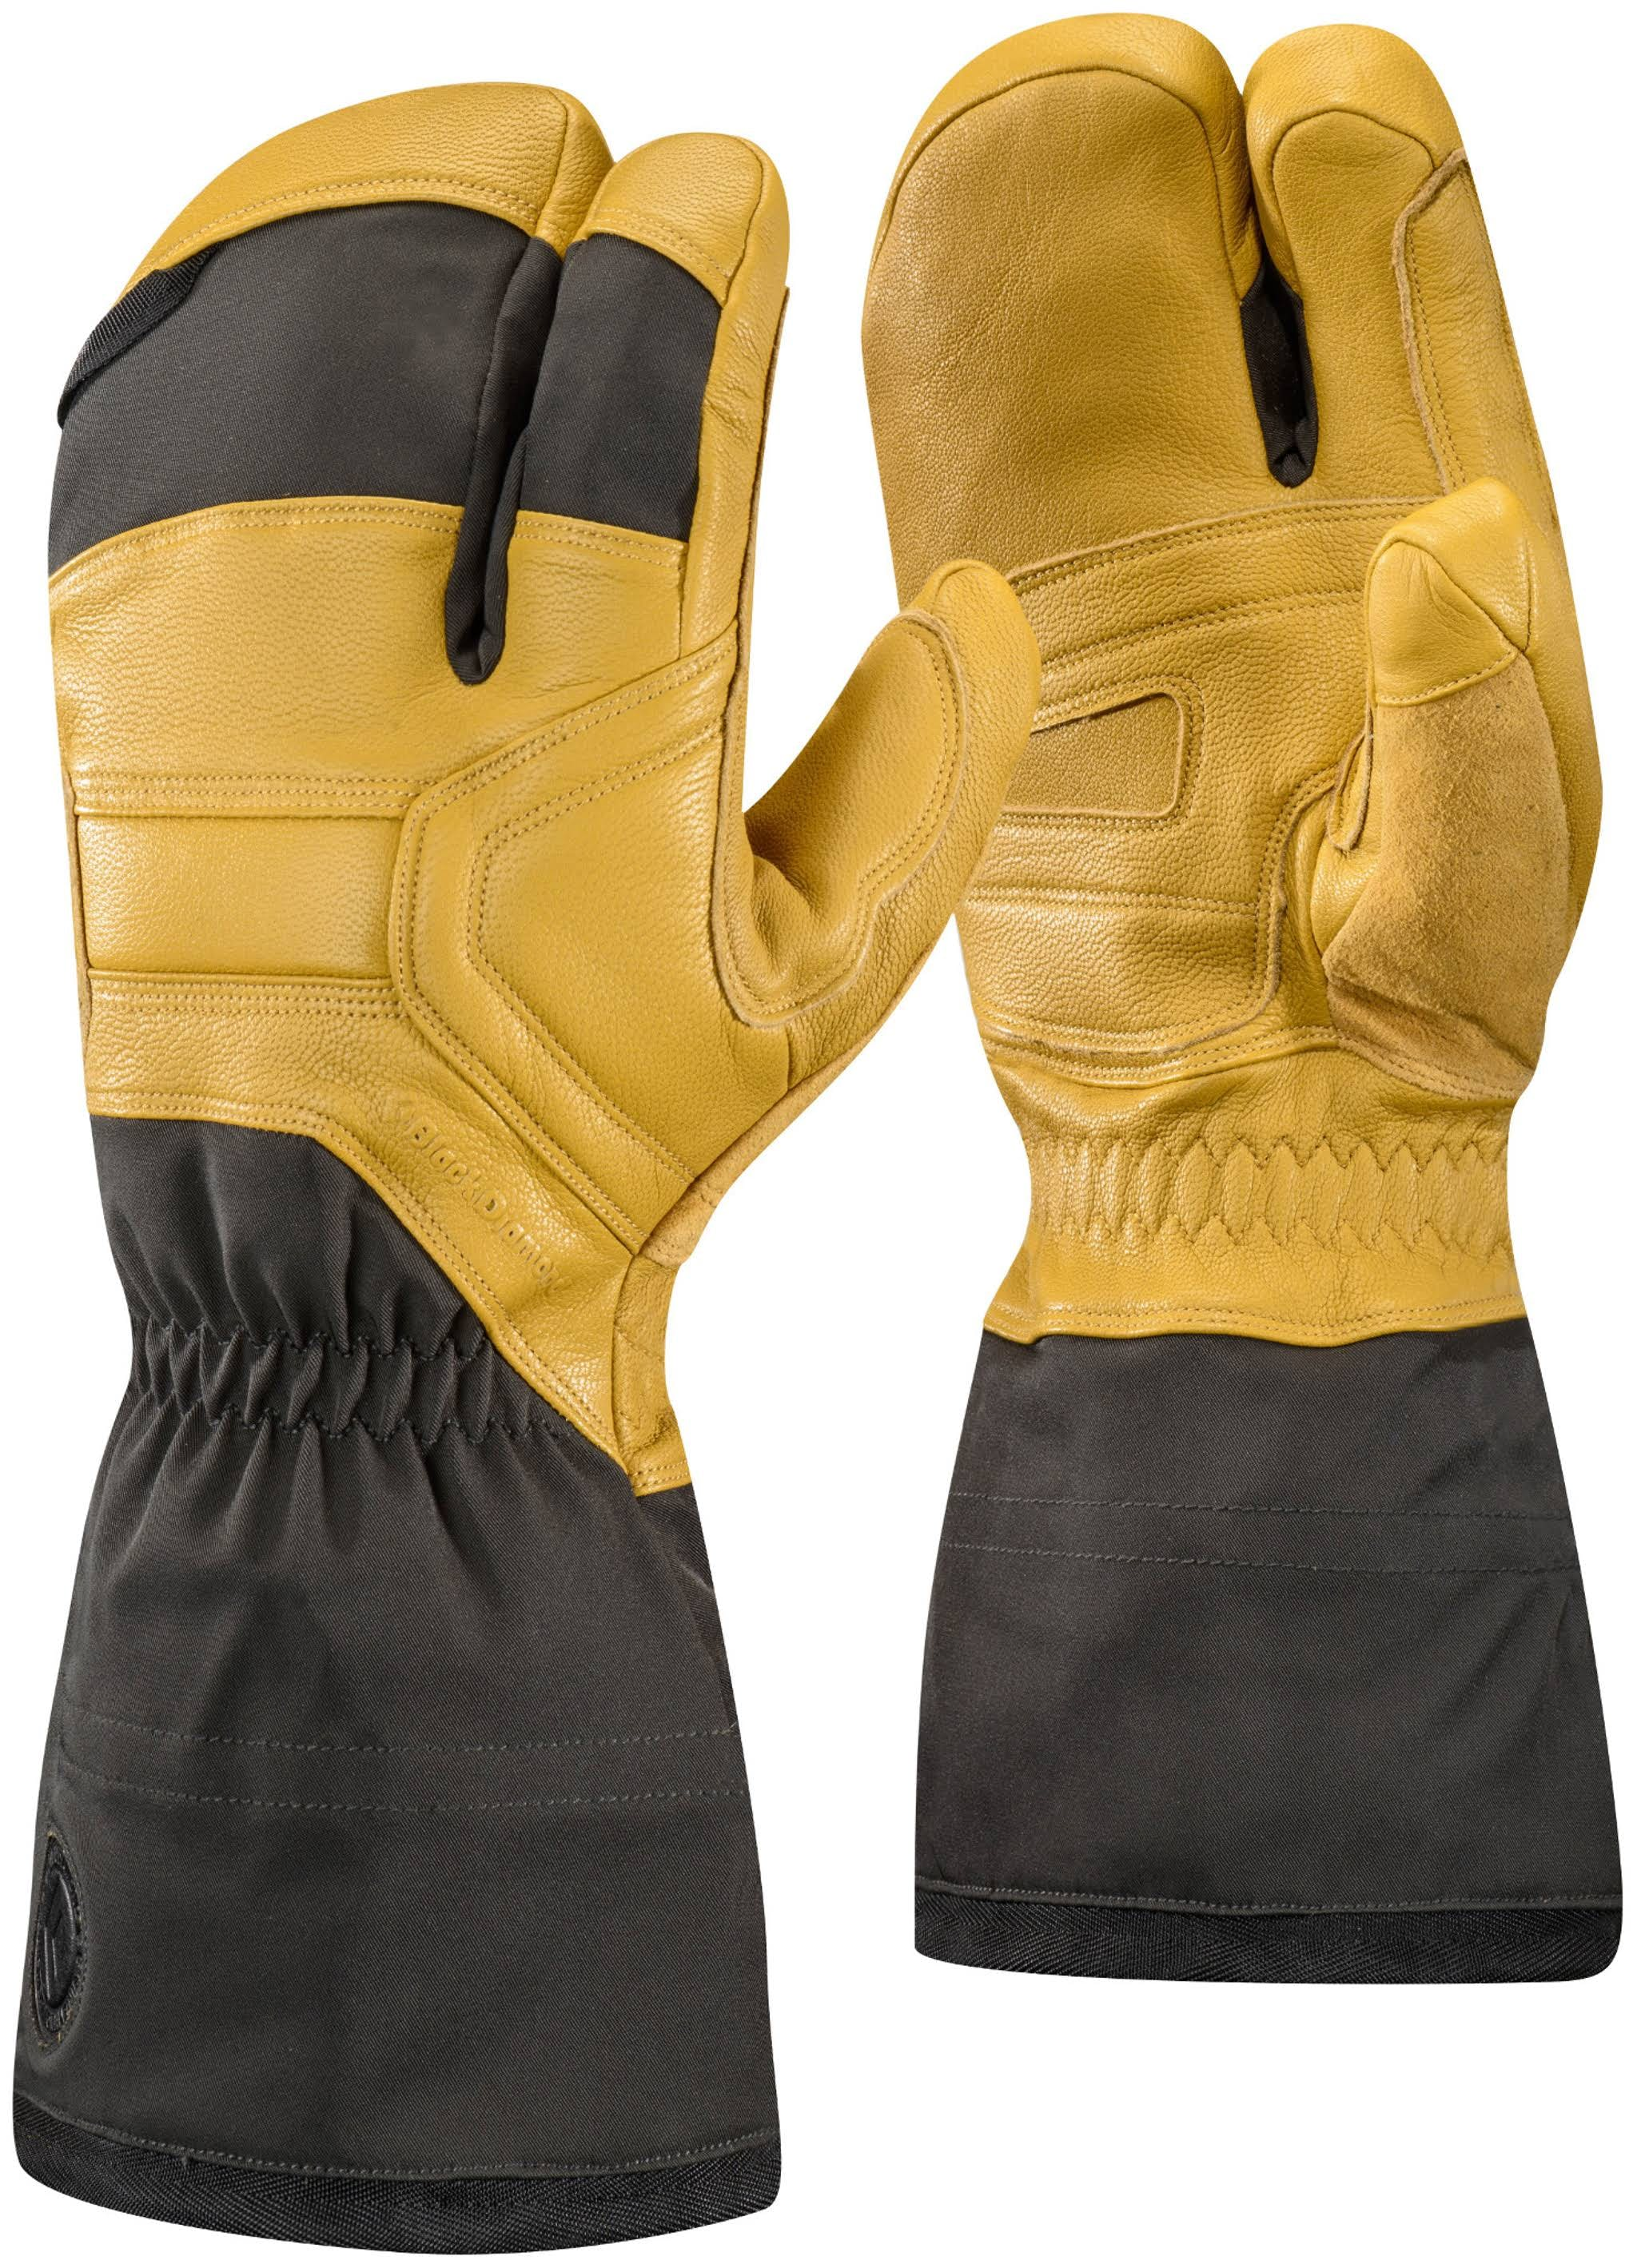 Black Diamond Guide Finger Gloves Natural / XL